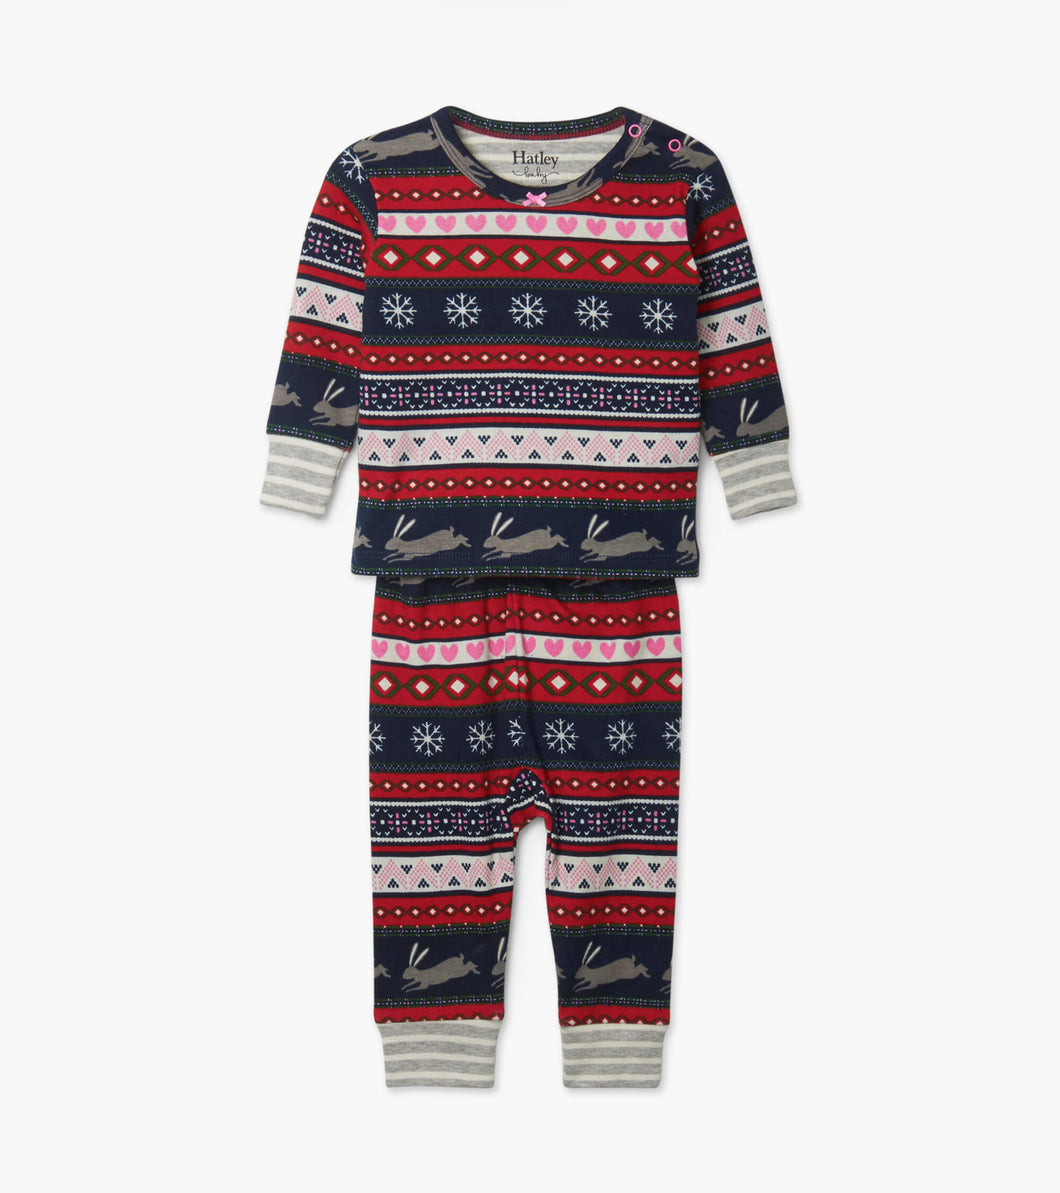 Fair Isle Bunnies Baby Pajamas by Hatley